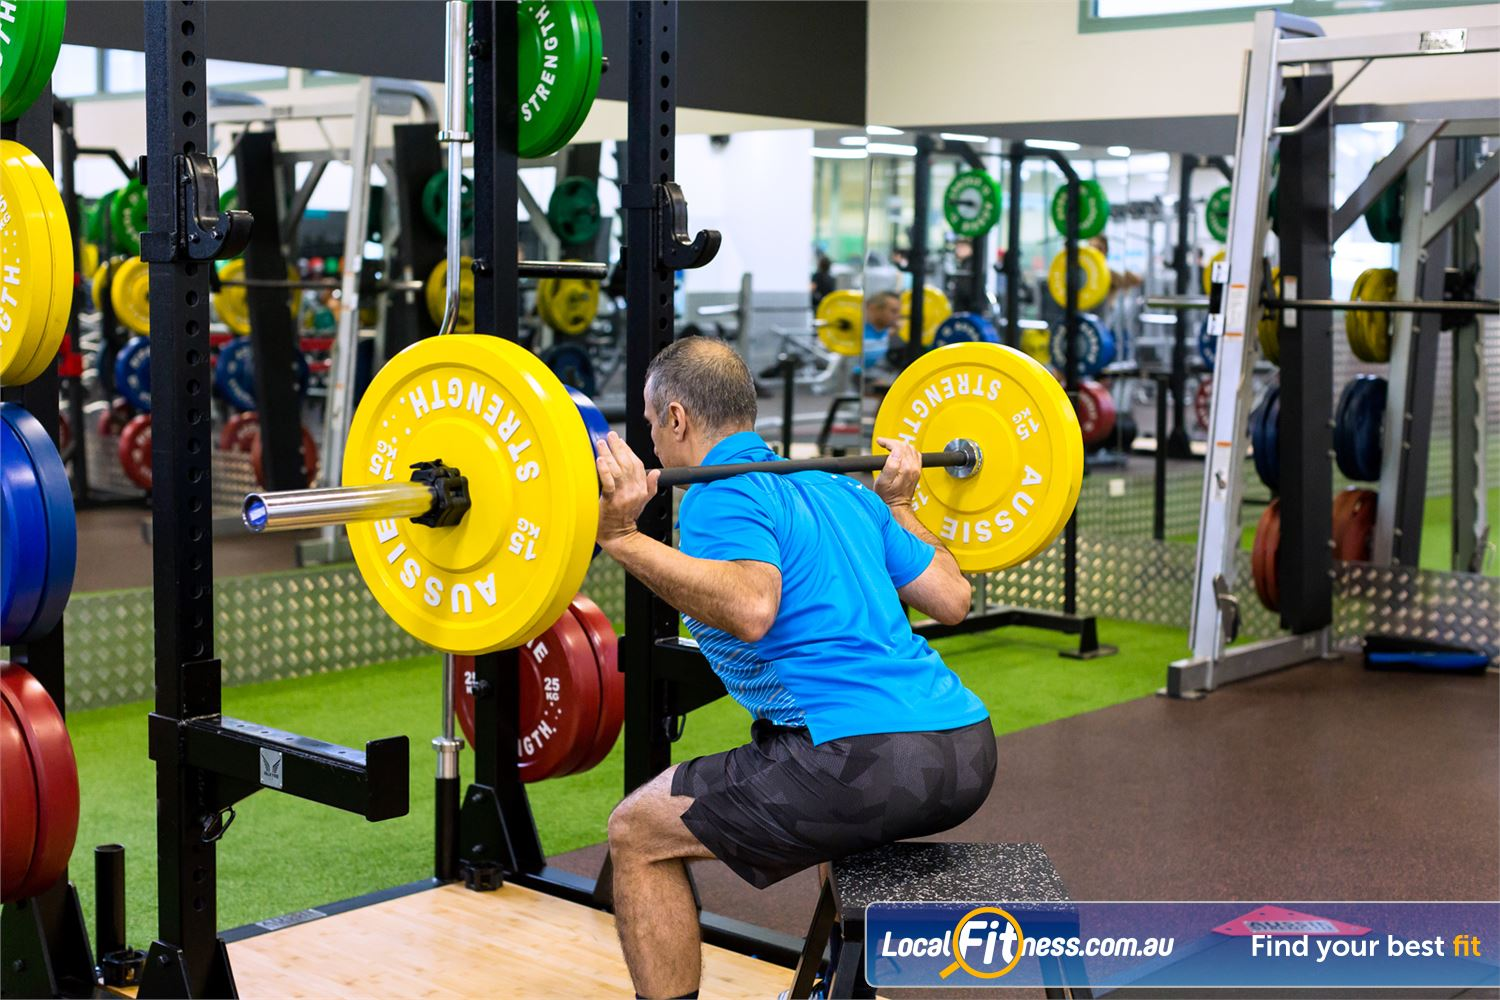 Reservoir Leisure Centre Reservoir A wide variety of strength training at the Reservoir Leisure Centre.